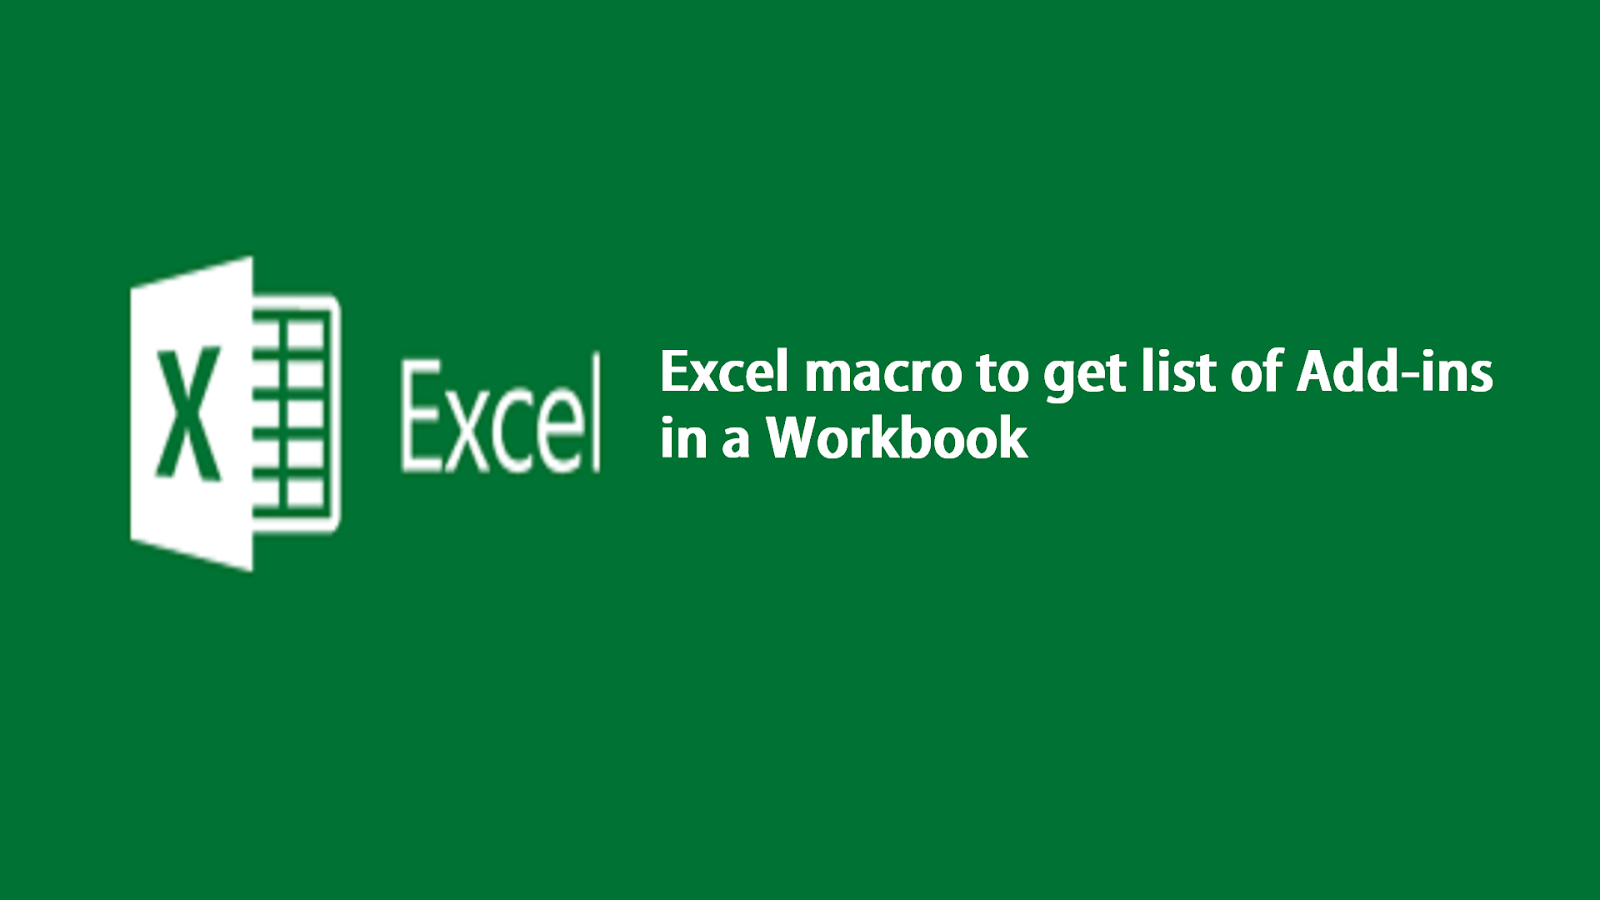 Vba Tricks And Tips Excel Macro To List All Add Ins In The Workbook